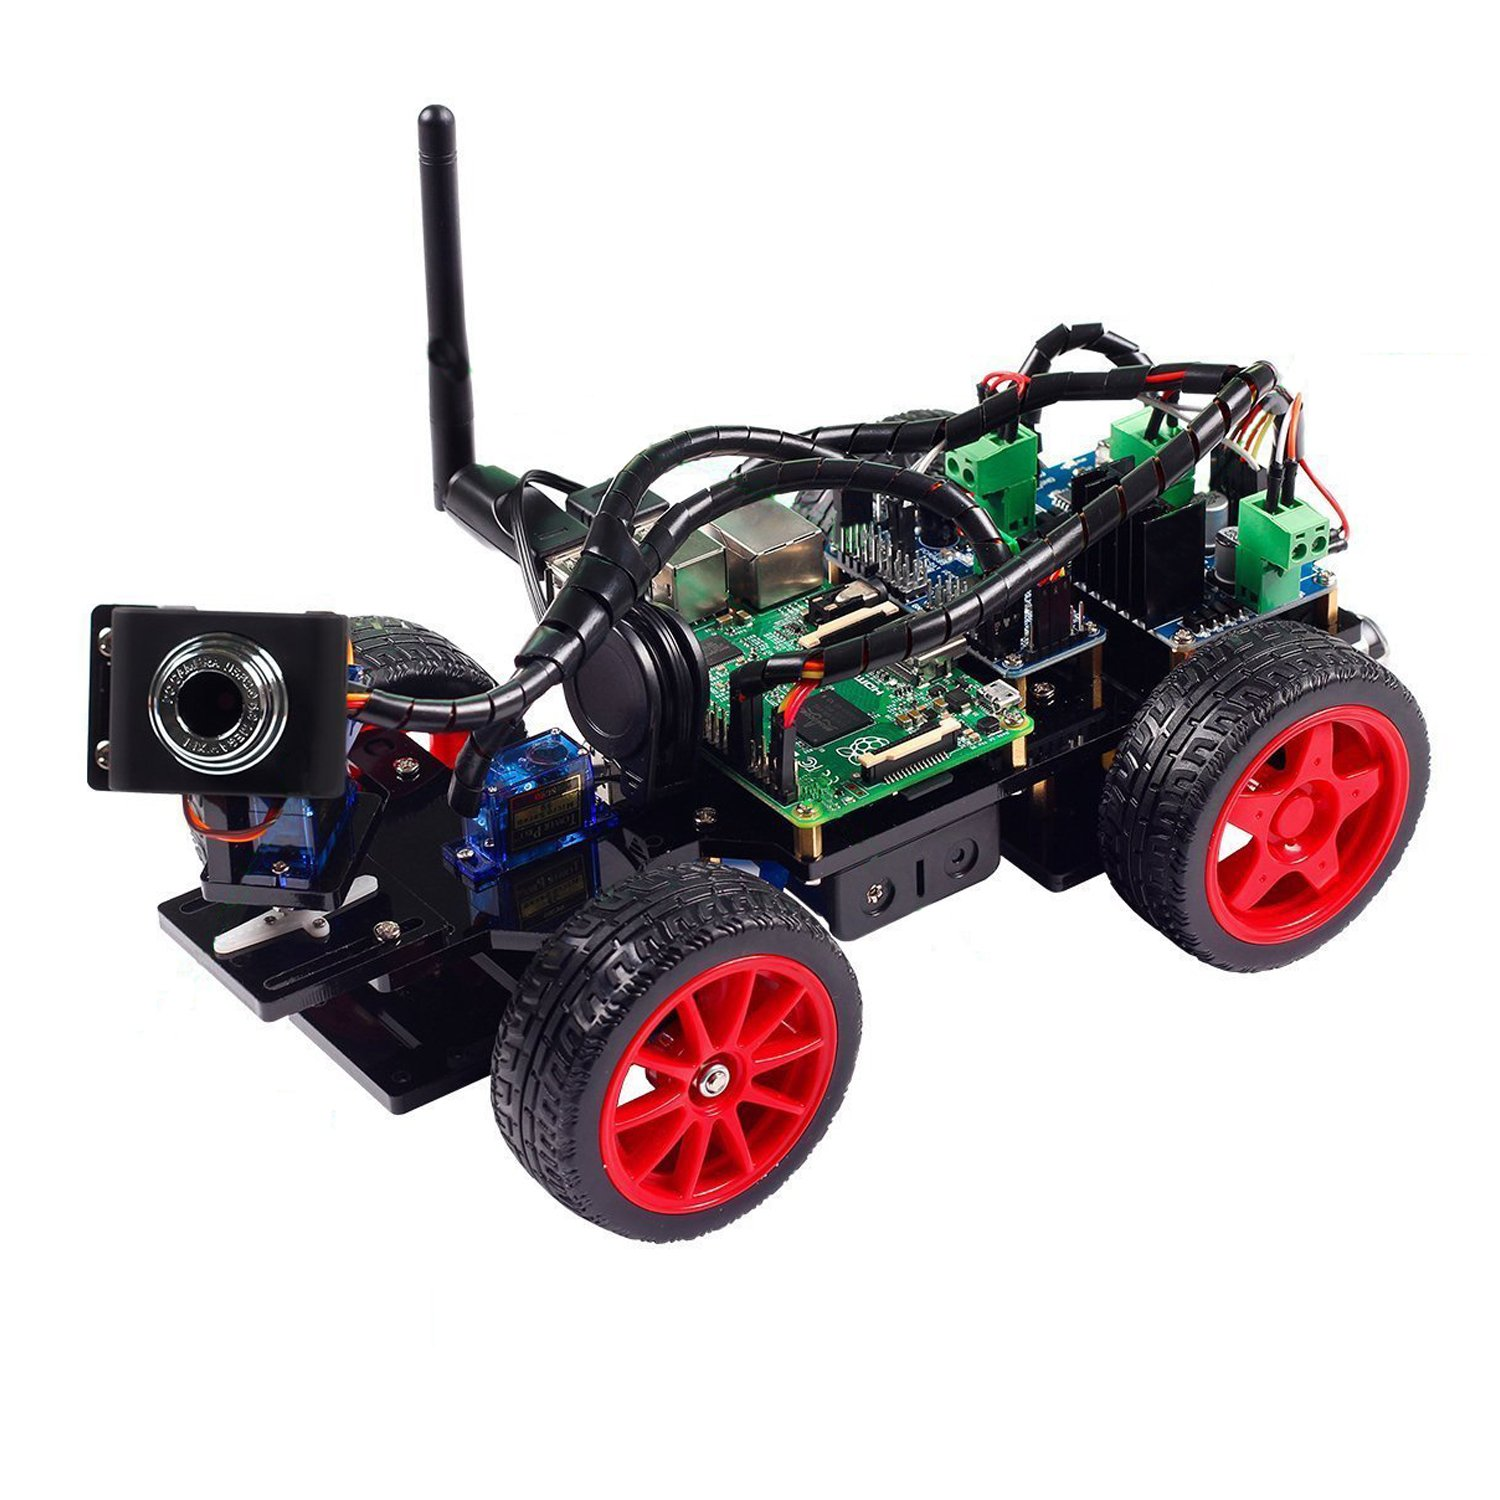 SunFounder for Smart Video Car Kit for SunFounder Raspberry Pi with Android App, Compatible with RPi 3, 2 and RPi 1 Model B+ (Pi Not Included) 792b11